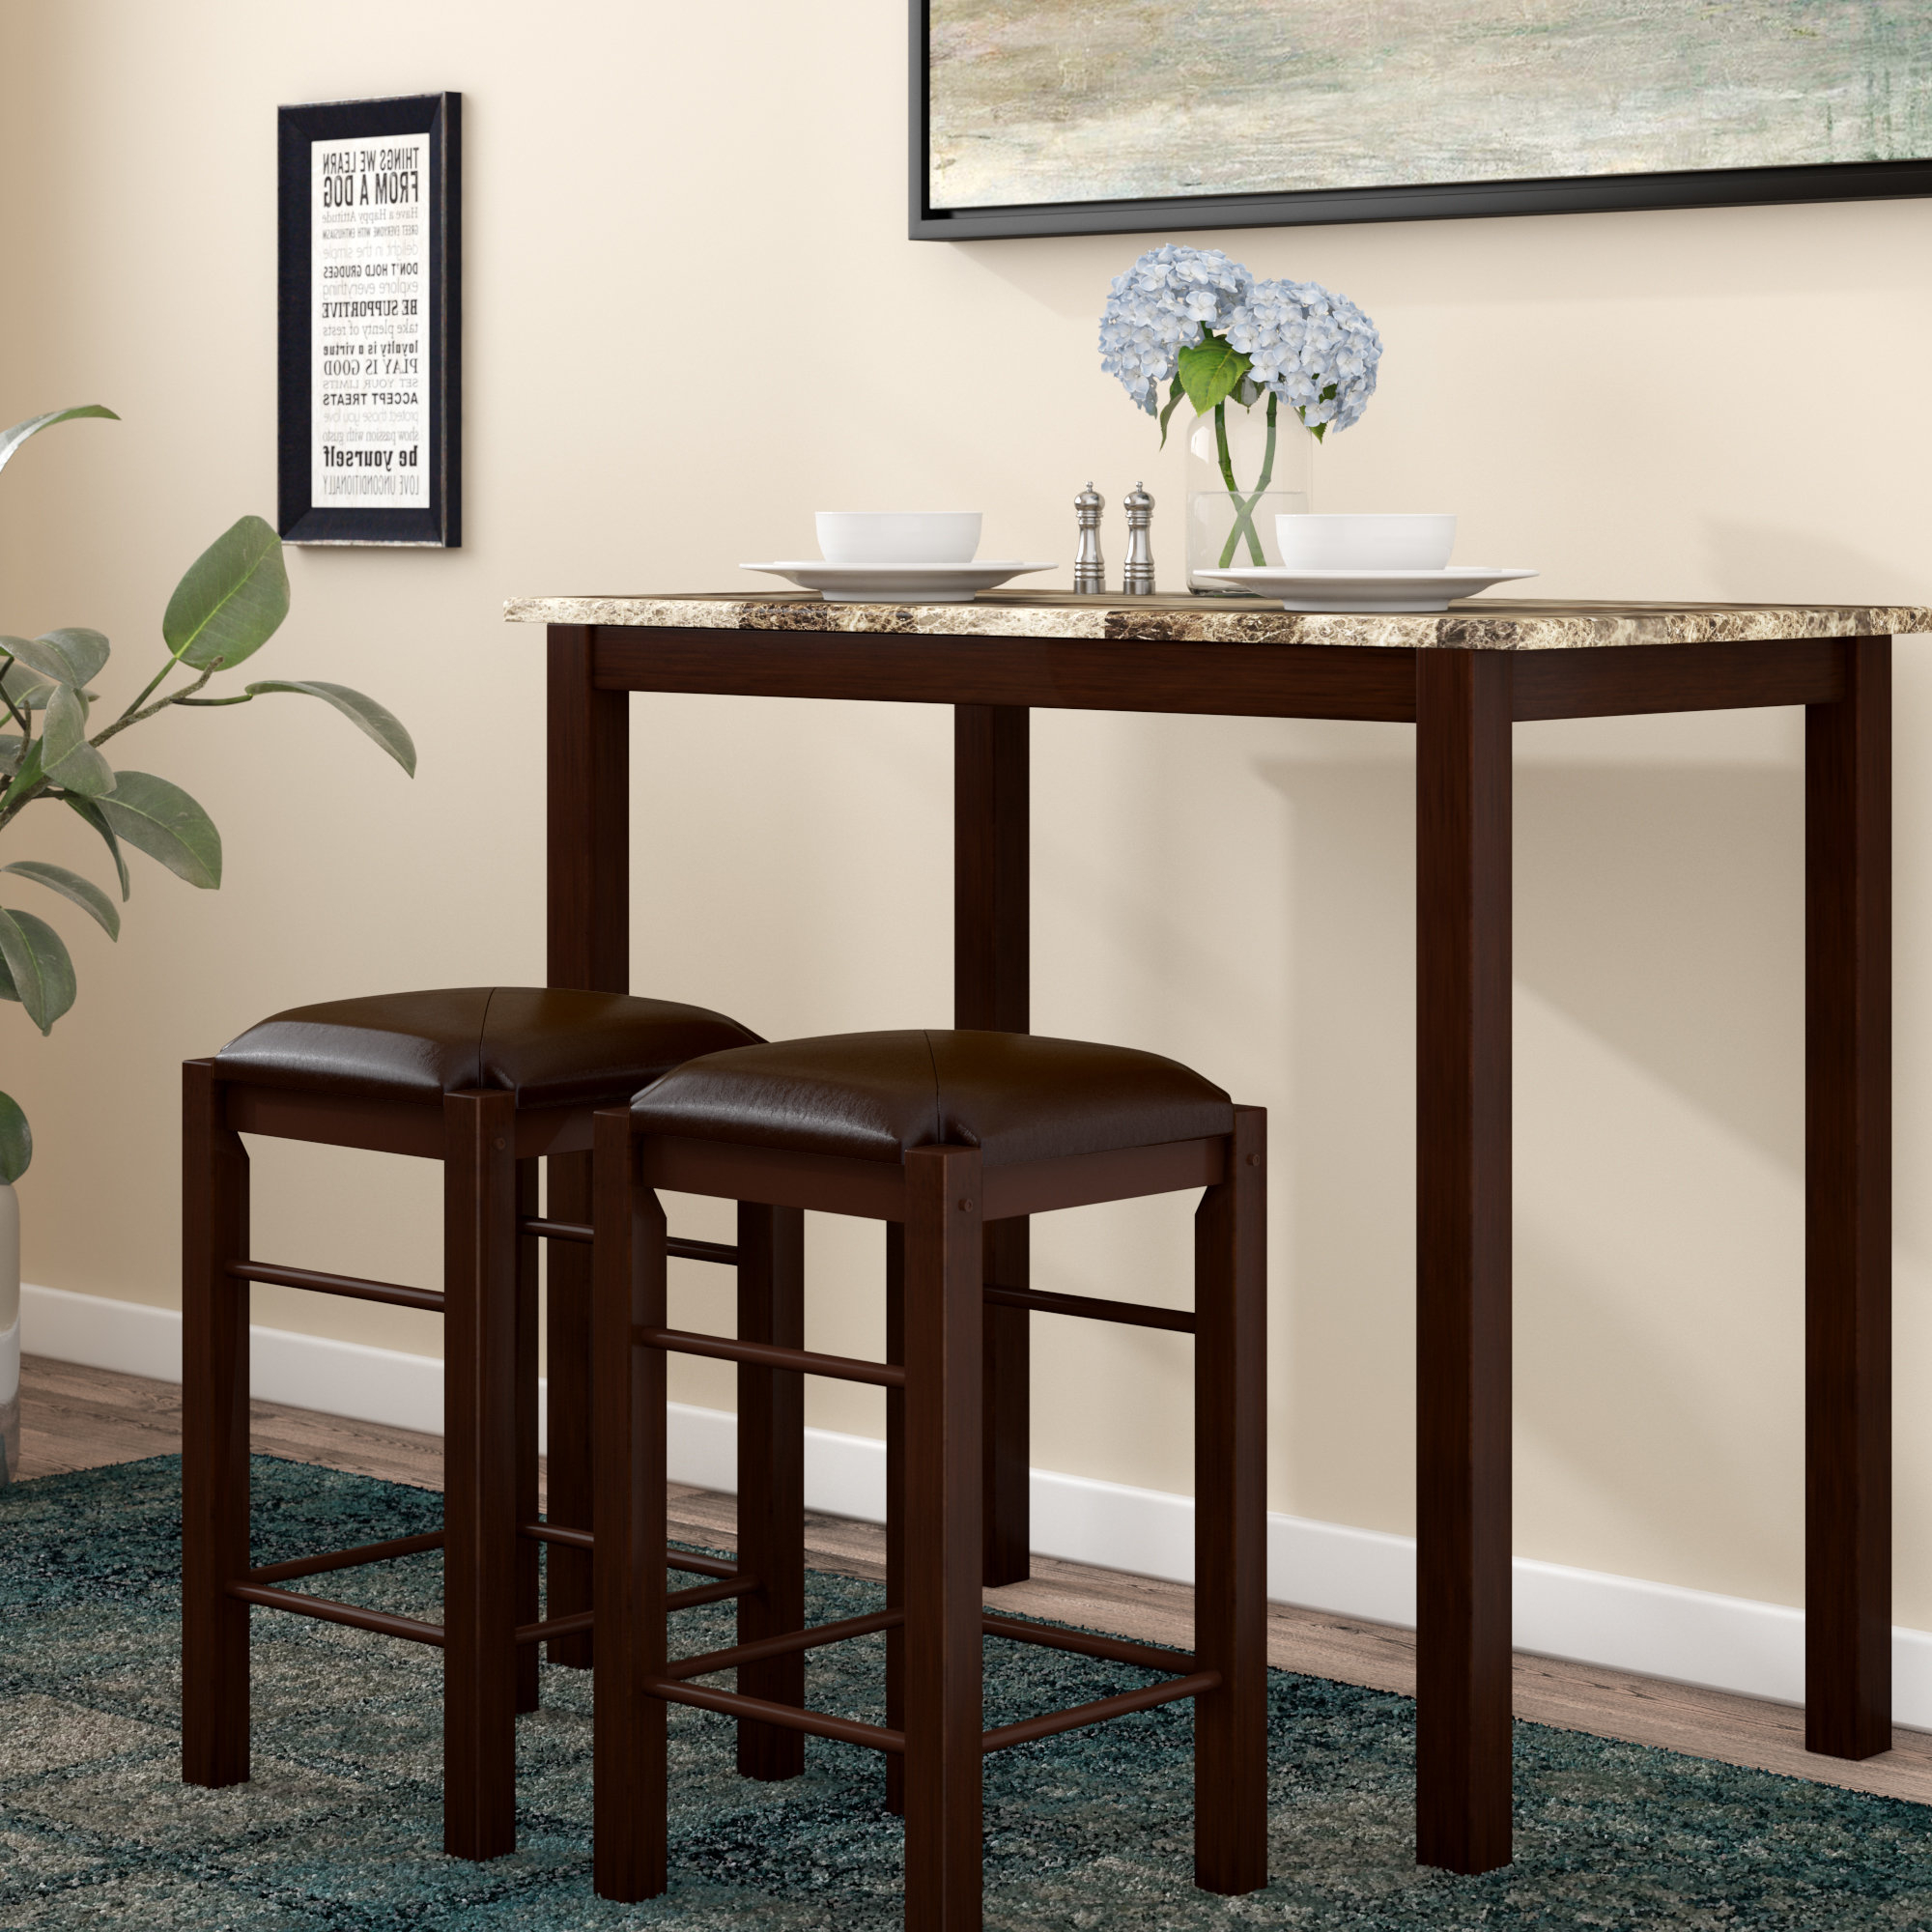 Best And Newest Penelope 3 Piece Counter Height Wood Dining Set Regarding Debby Small Space 3 Piece Dining Sets (View 3 of 25)